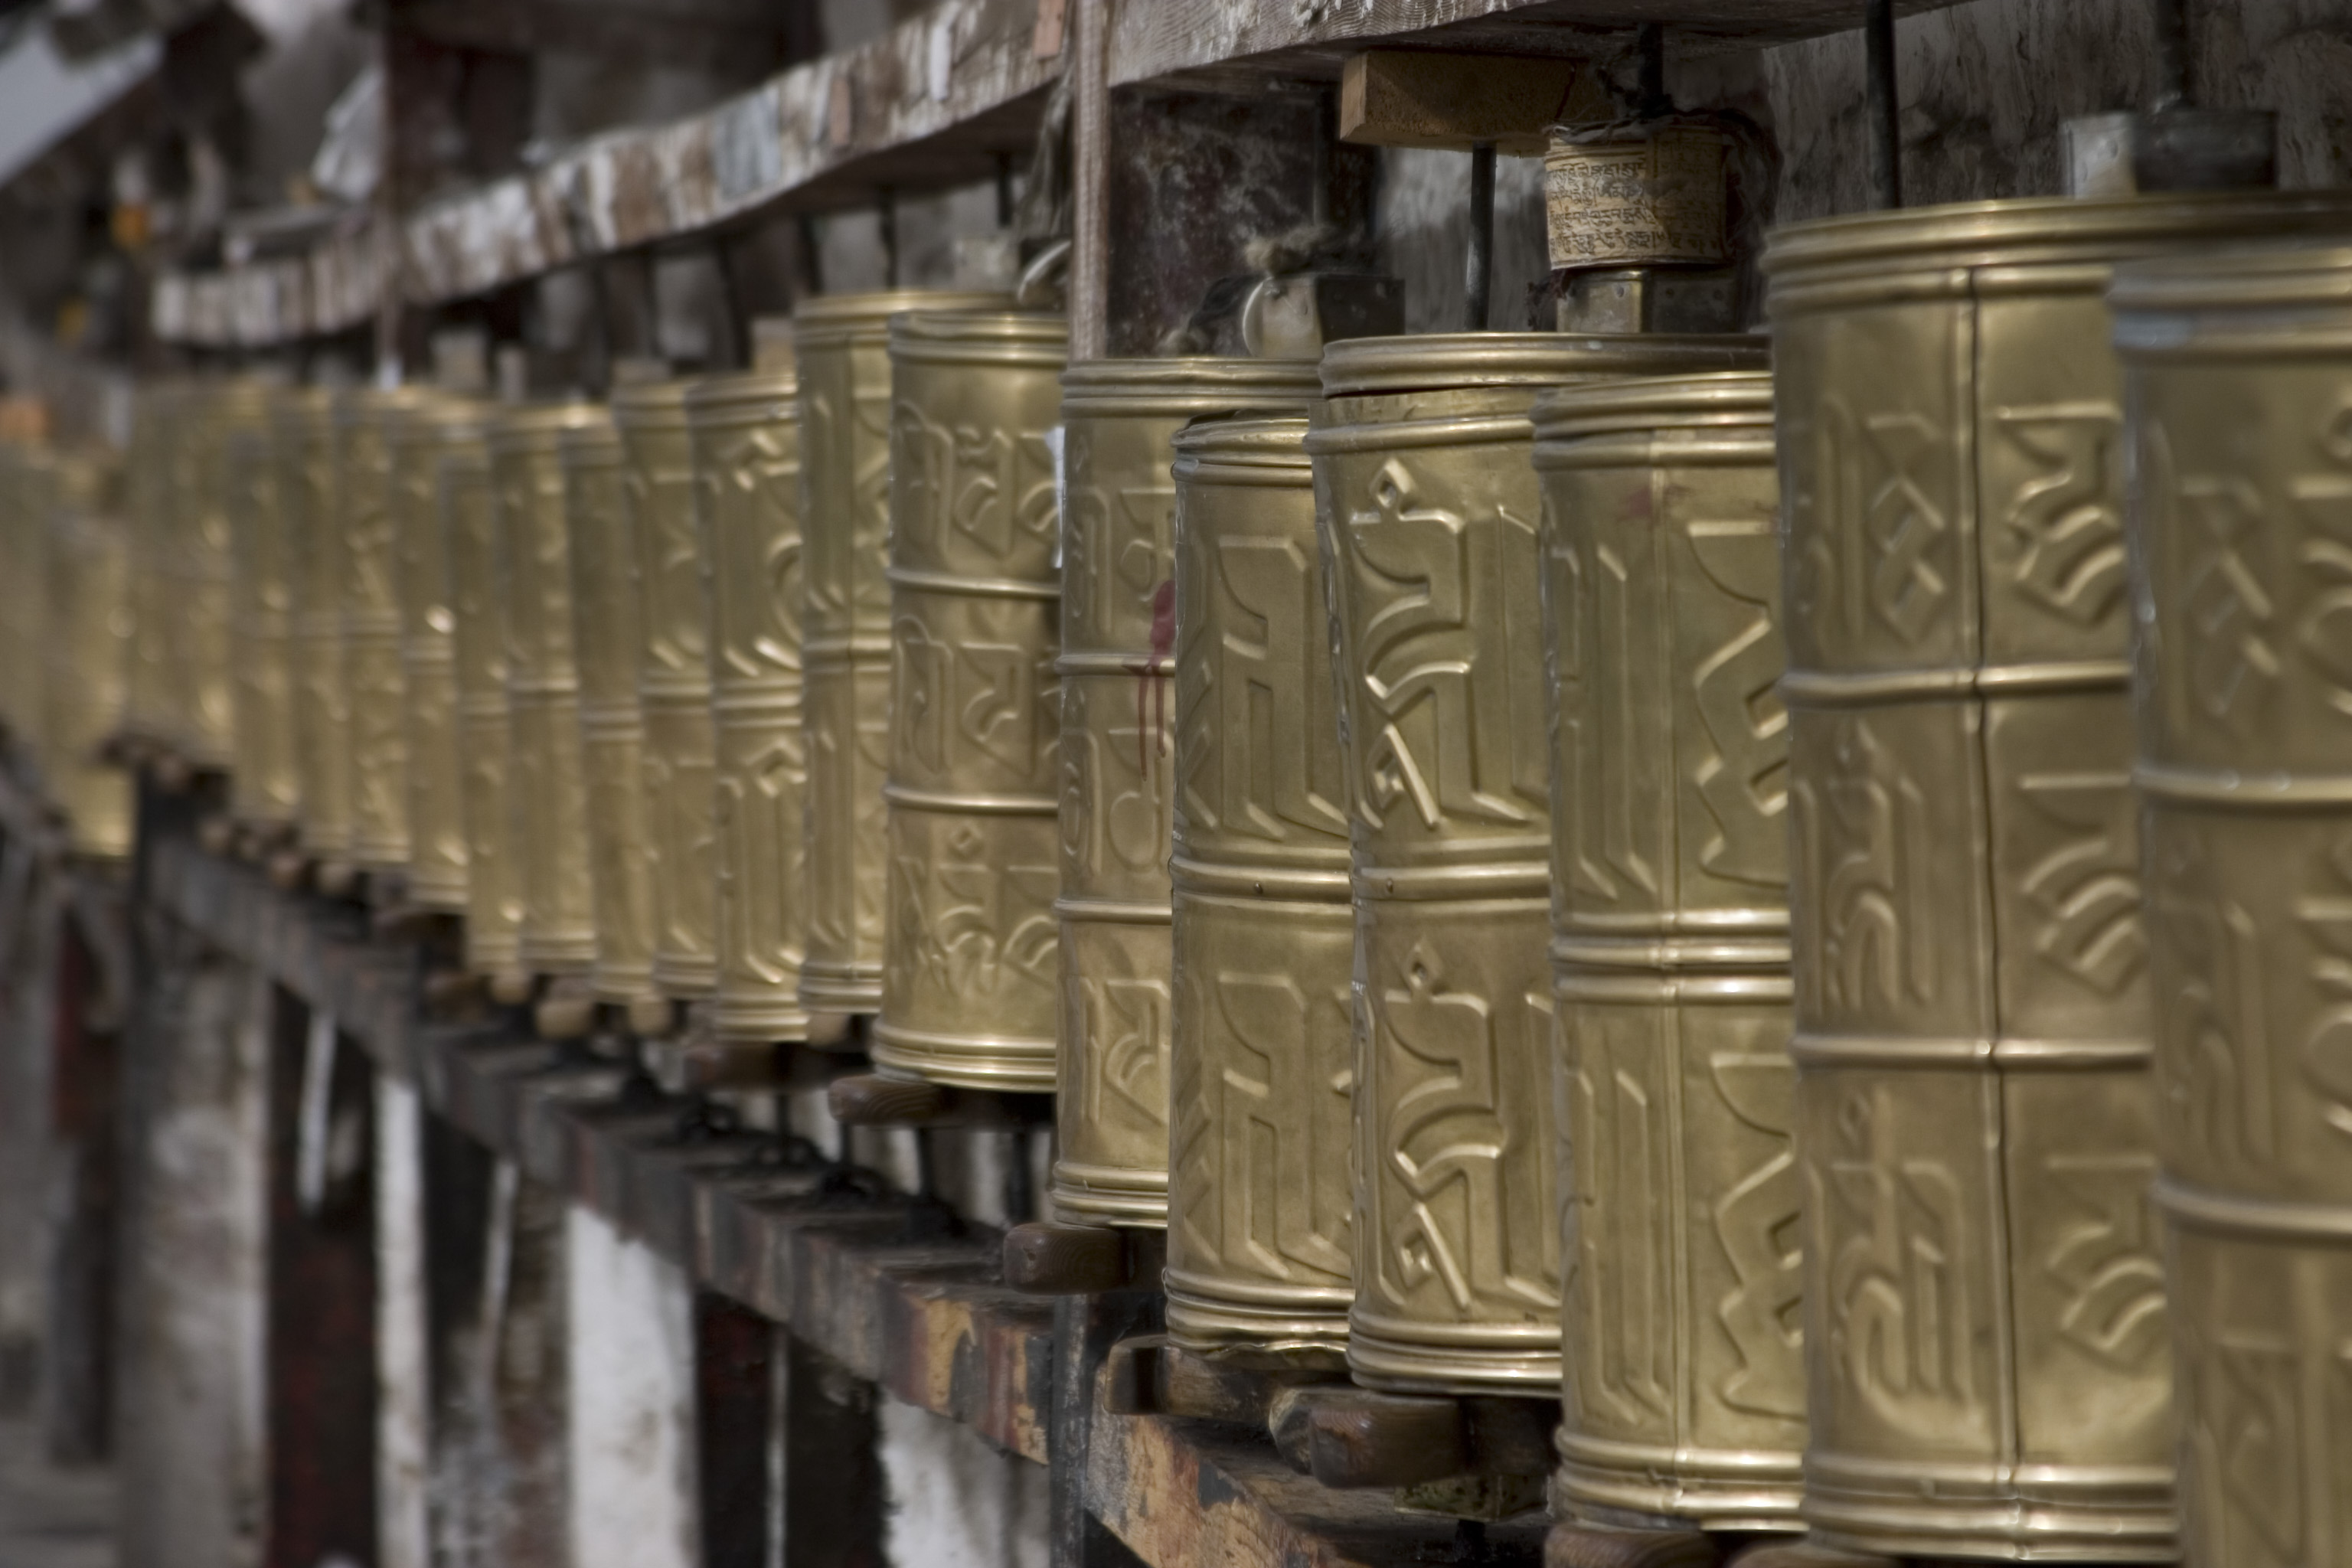 Prayer Wheels Potala Palace Lhasa Tibet